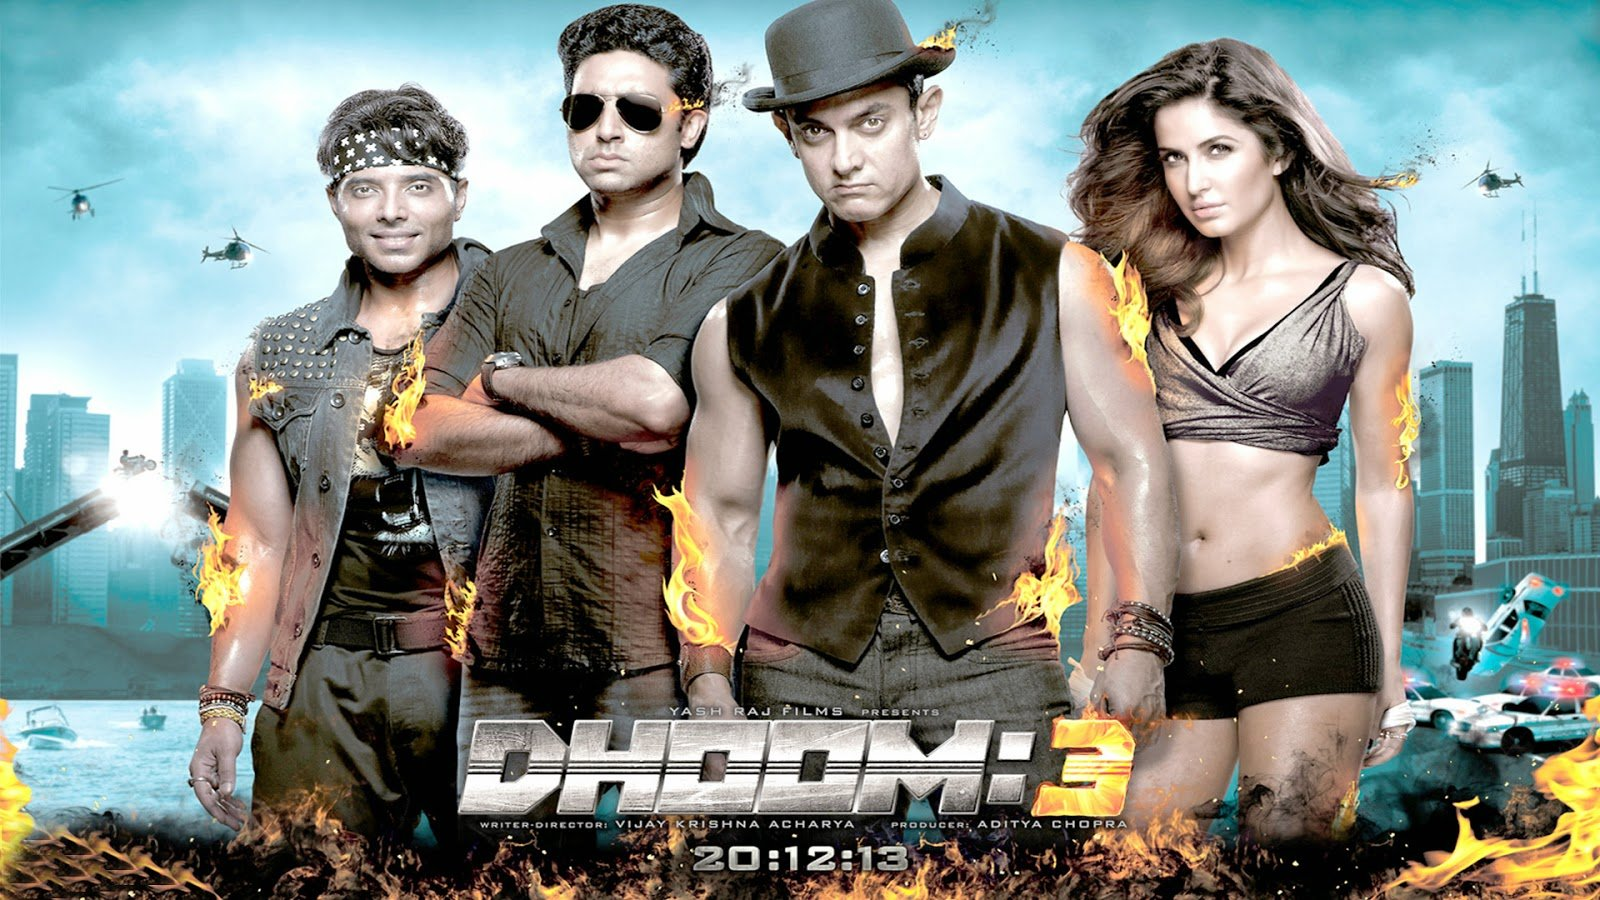 Best 39 Dhoom 3 Wallpapers on HipWallpaper Dhoom 3 Wallpapers 1600x900